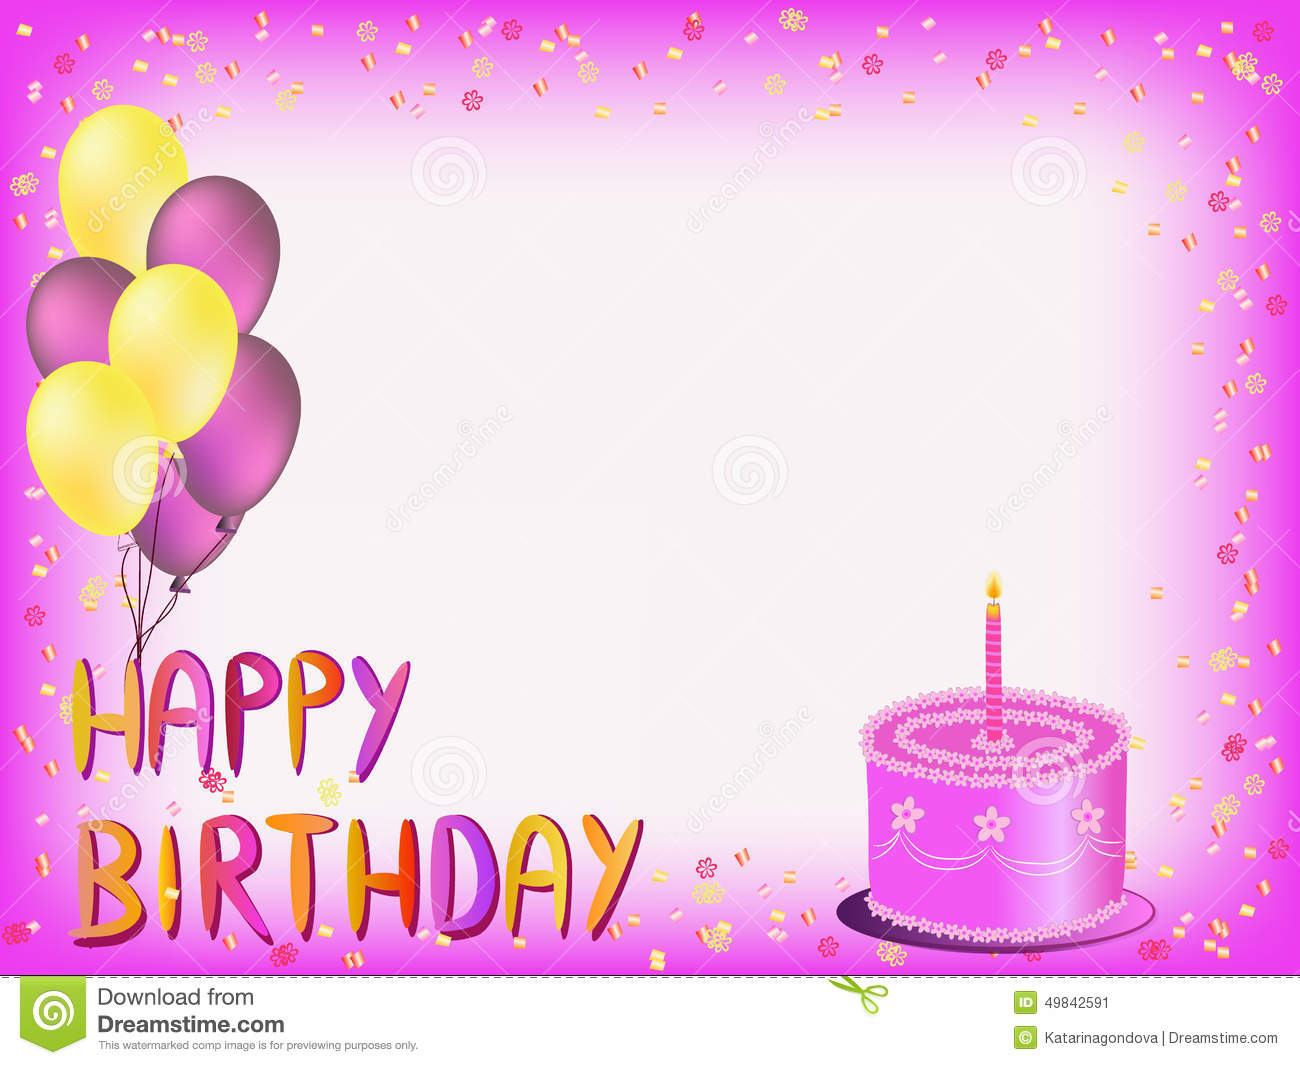 background images for birthday greeting cards ; 3fed5eb6885d5011b376387b2781f6b6